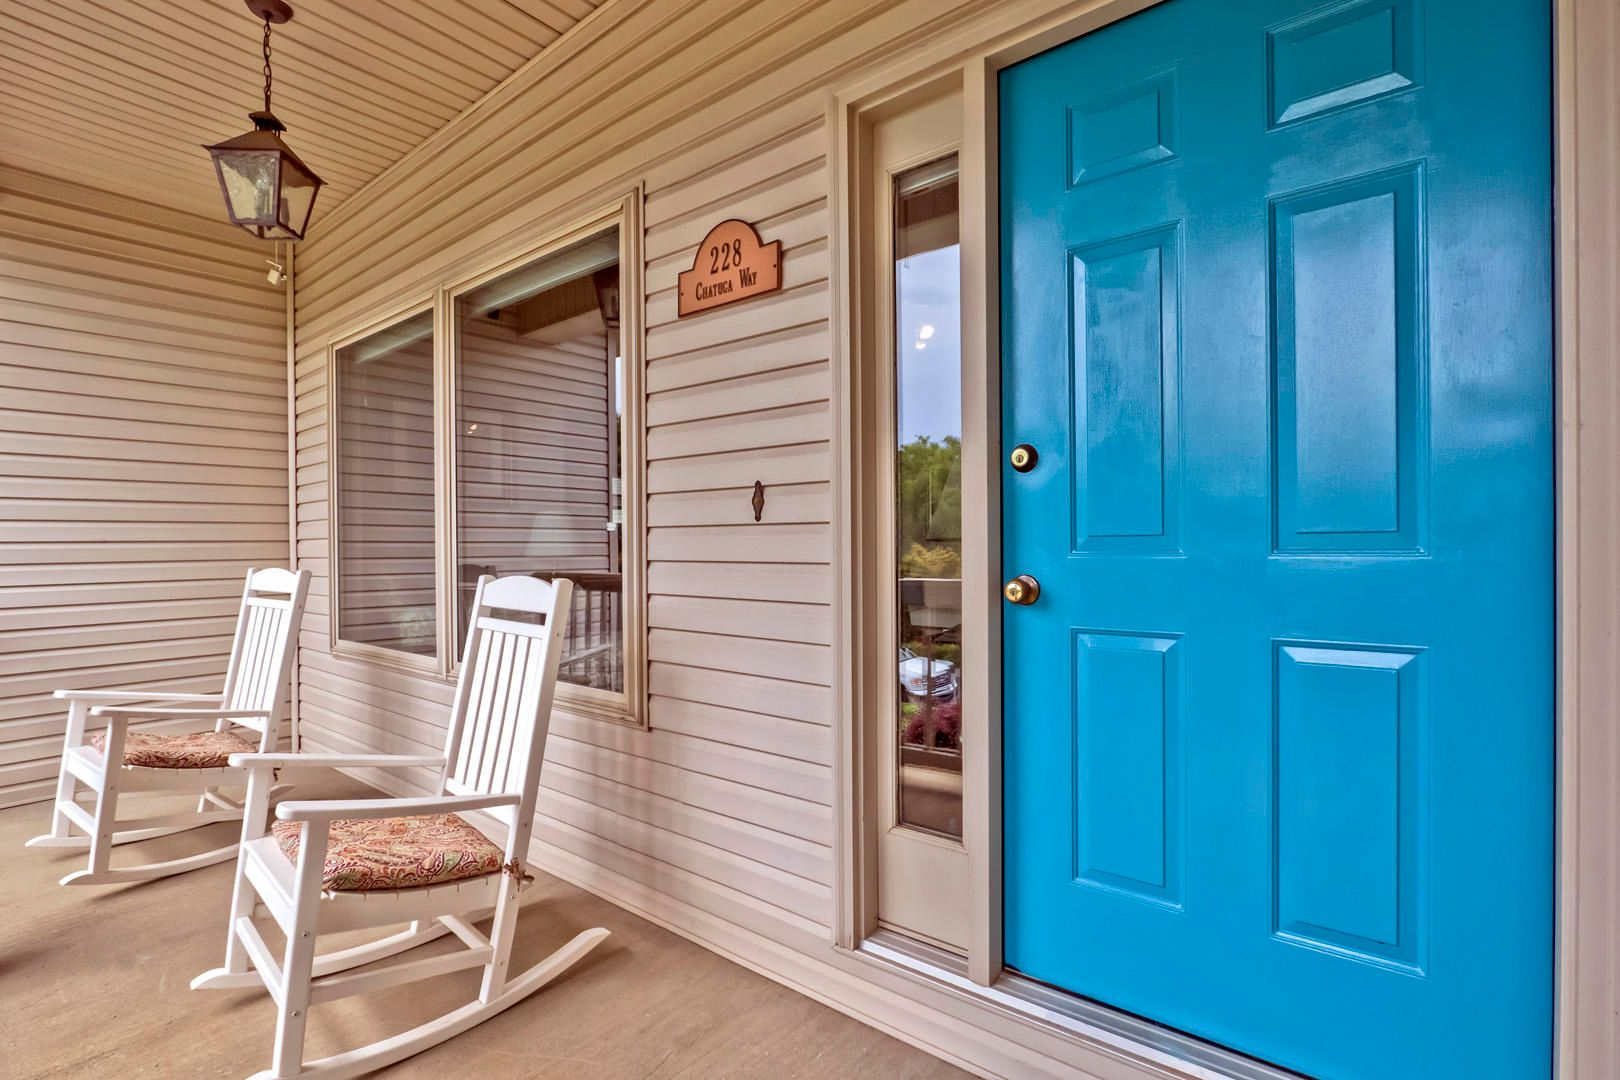 02_ChatugaWay_228_FrontPorch